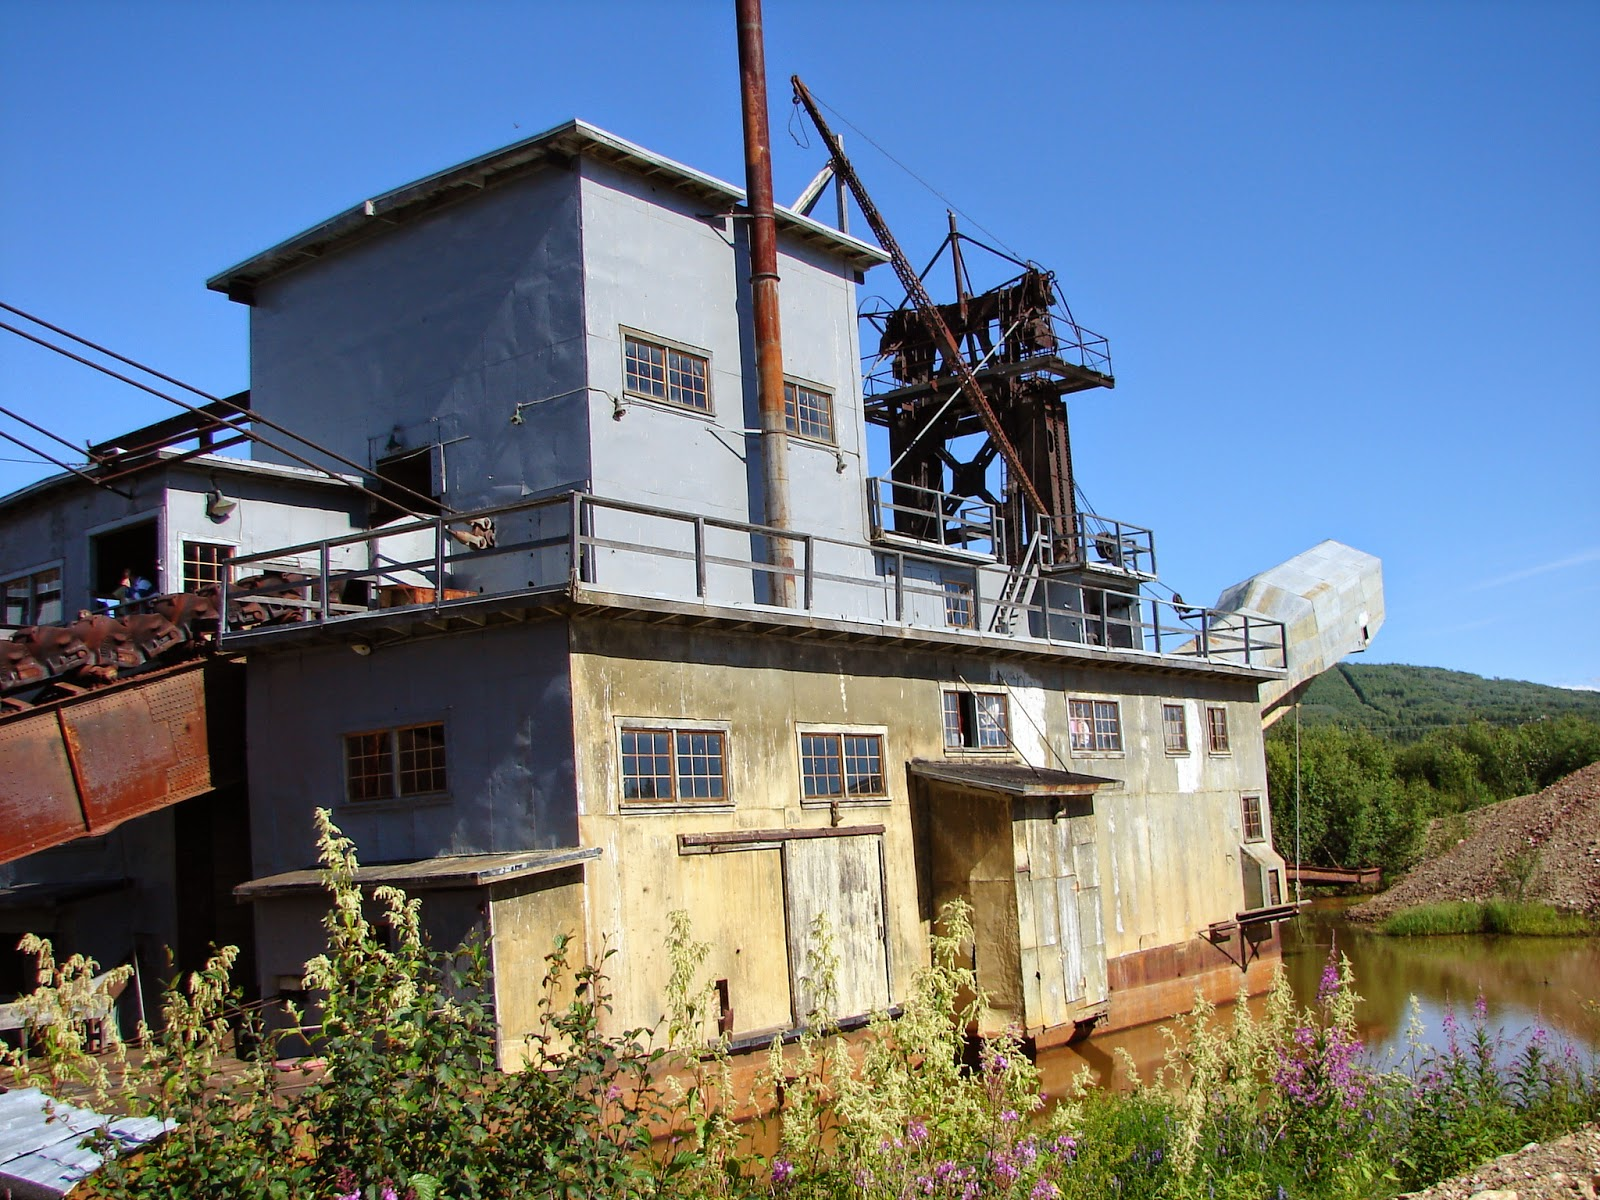 Actual gold dredge in easy to view spot near Fairbanks.